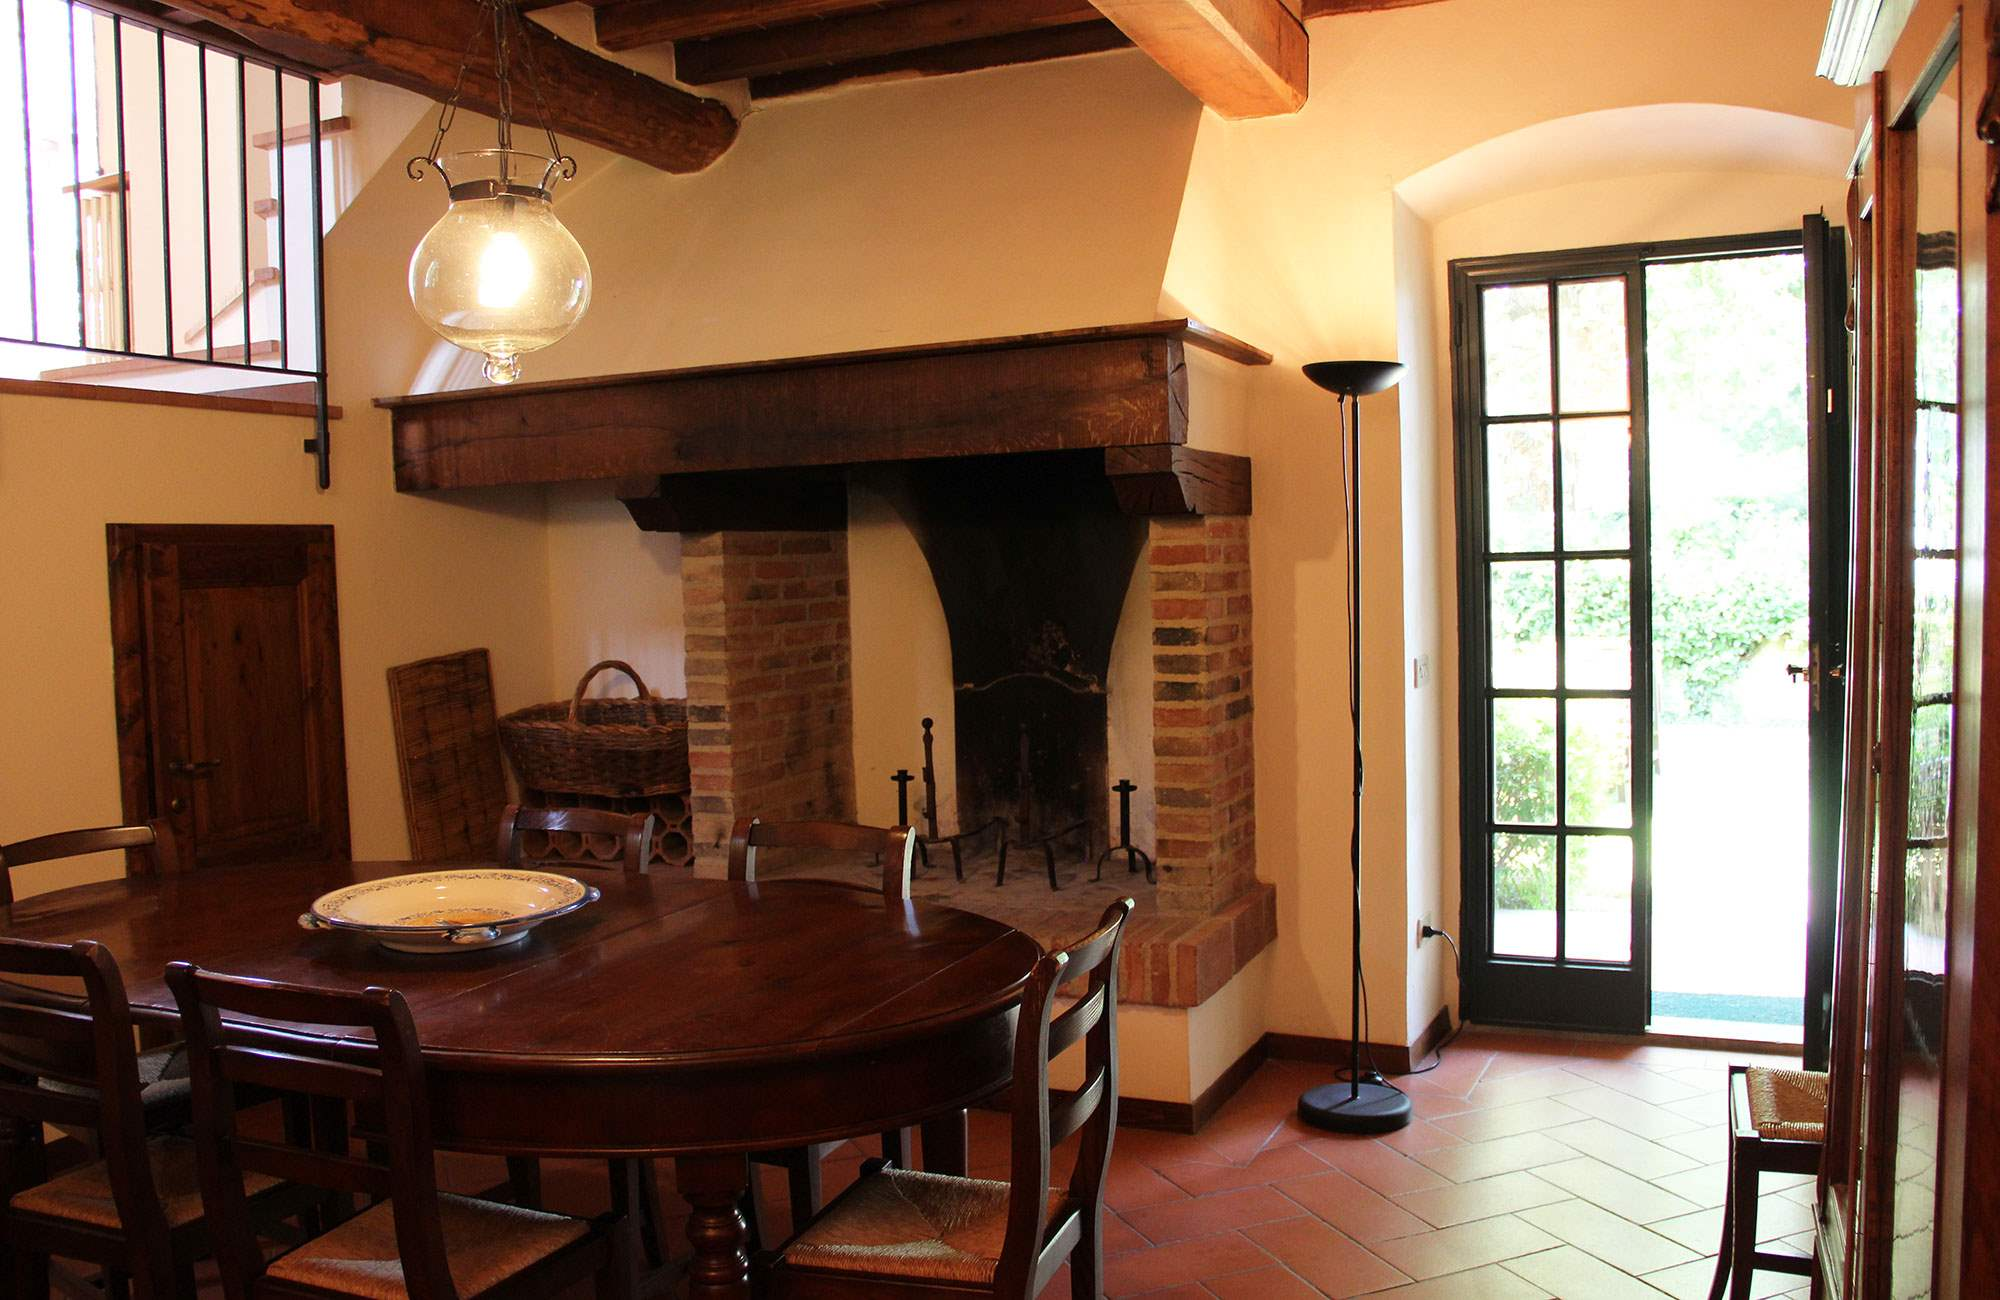 Casa Ferruzzi 2, 3 bedroom apartment in Chianti & Countryside, Tuscany Photo #10